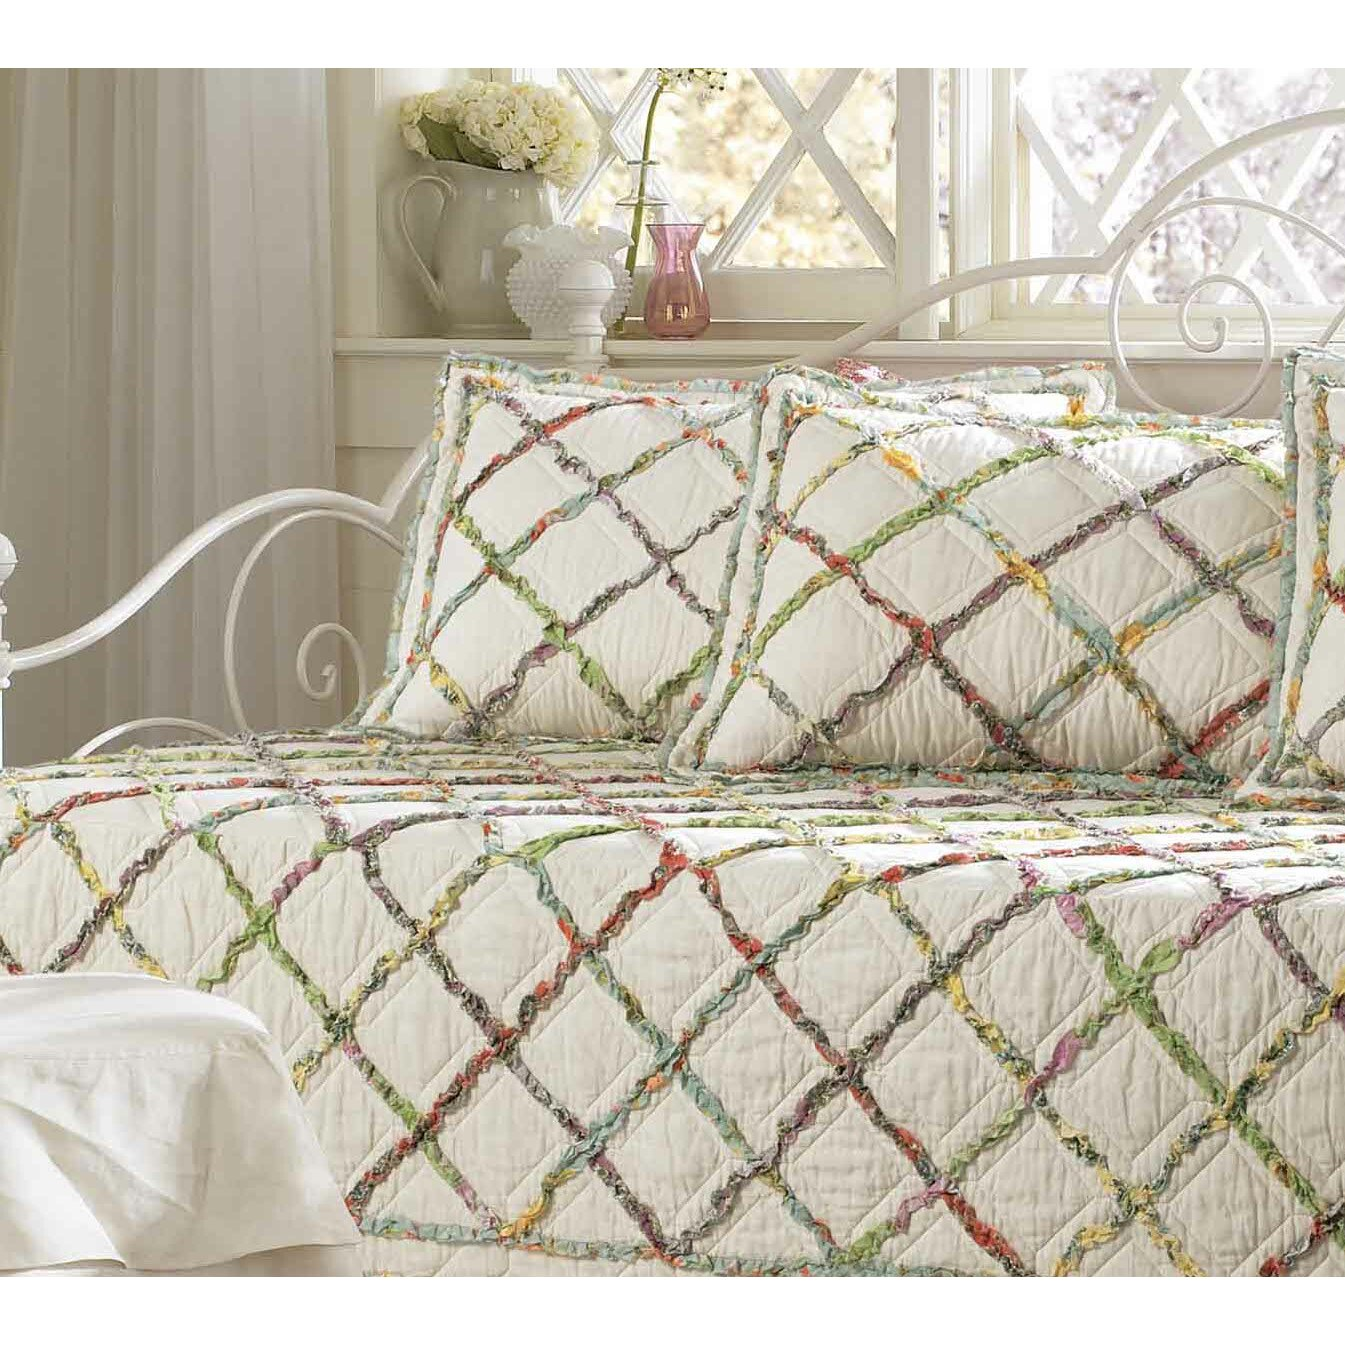 Laura Ashley Home Ruffled Garden Reversible Quilt Reviews Wayfair